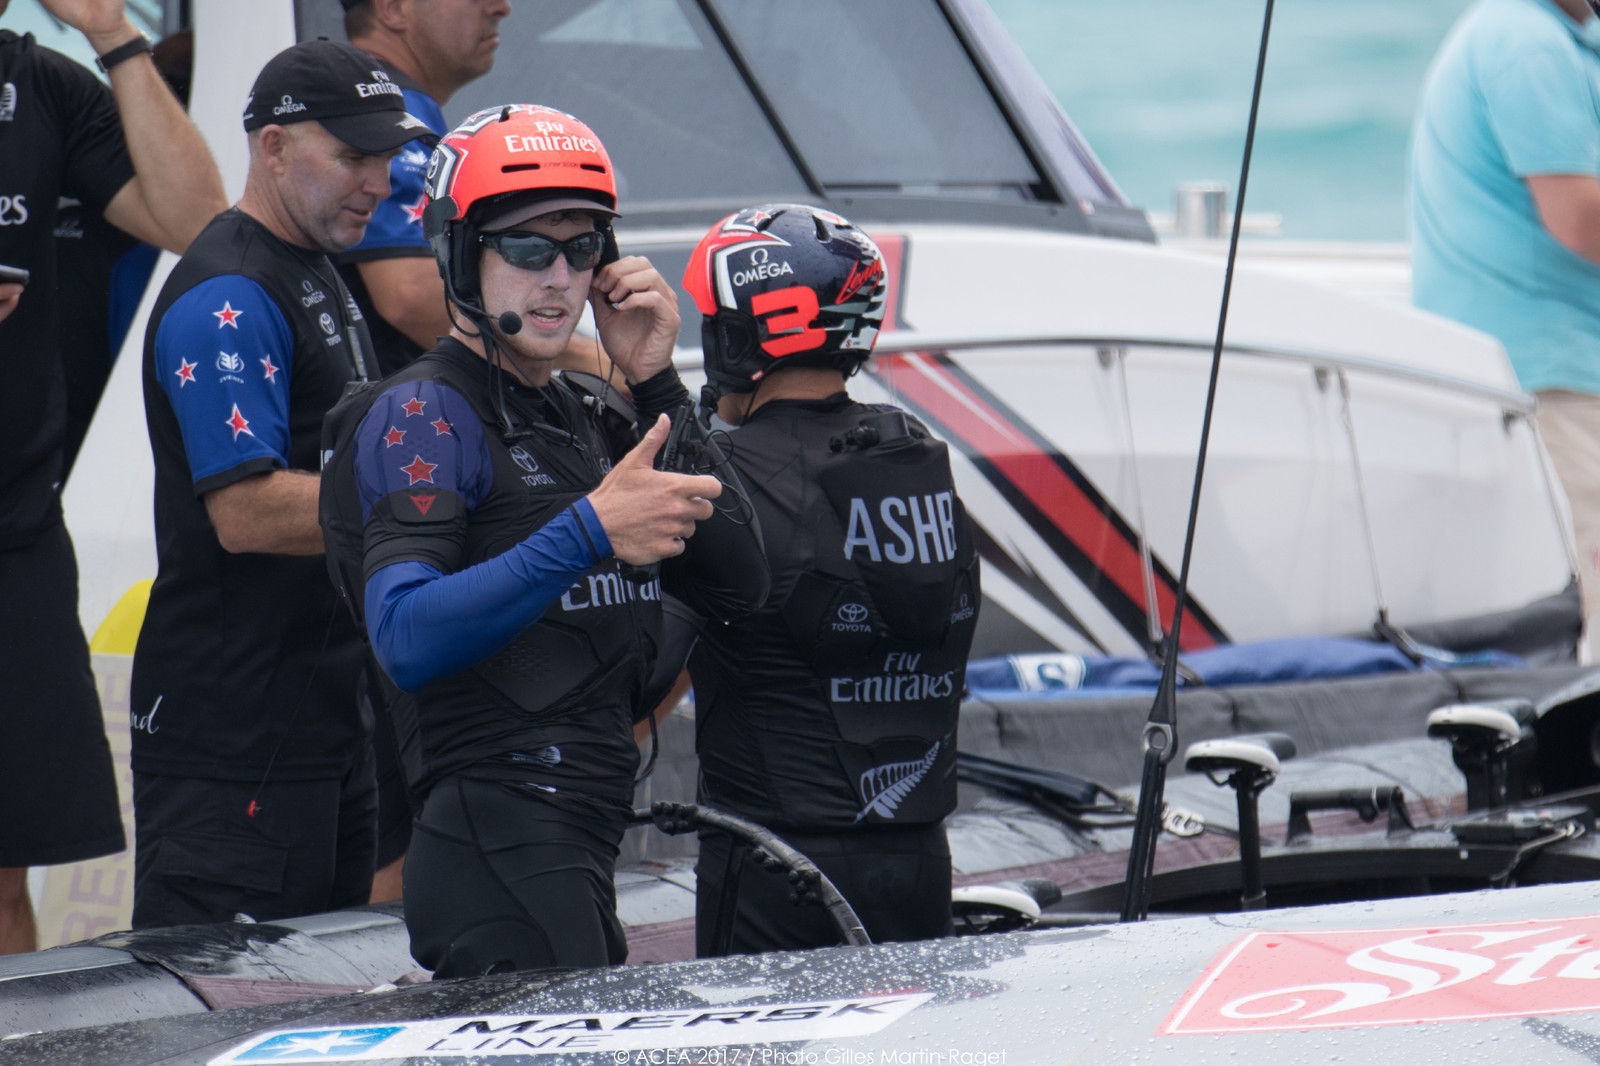 35th America's Cup Bermuda 2017 - Louis Vuitton America's Cup Qualifiers, Day 7